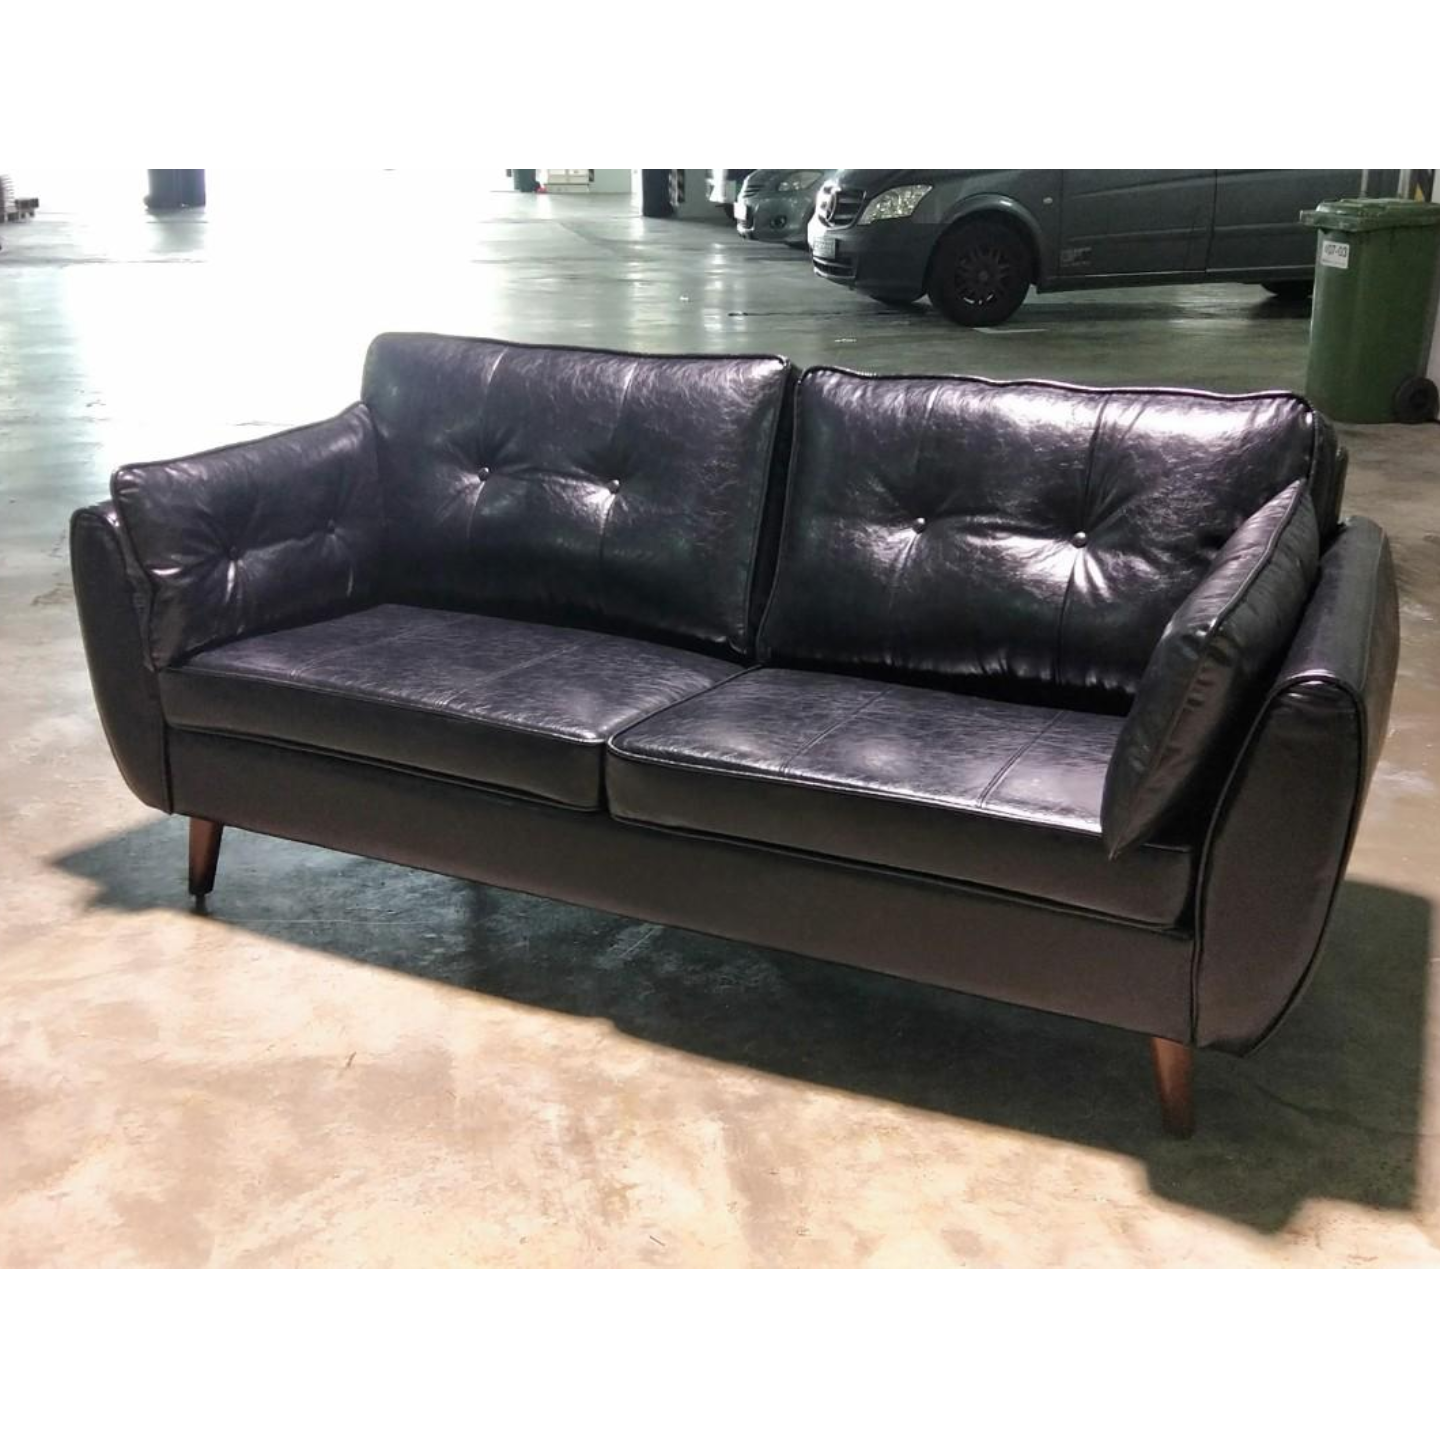 MOVICK Series II Designer 3 Seater Sofa in GLOSS BLACK PU